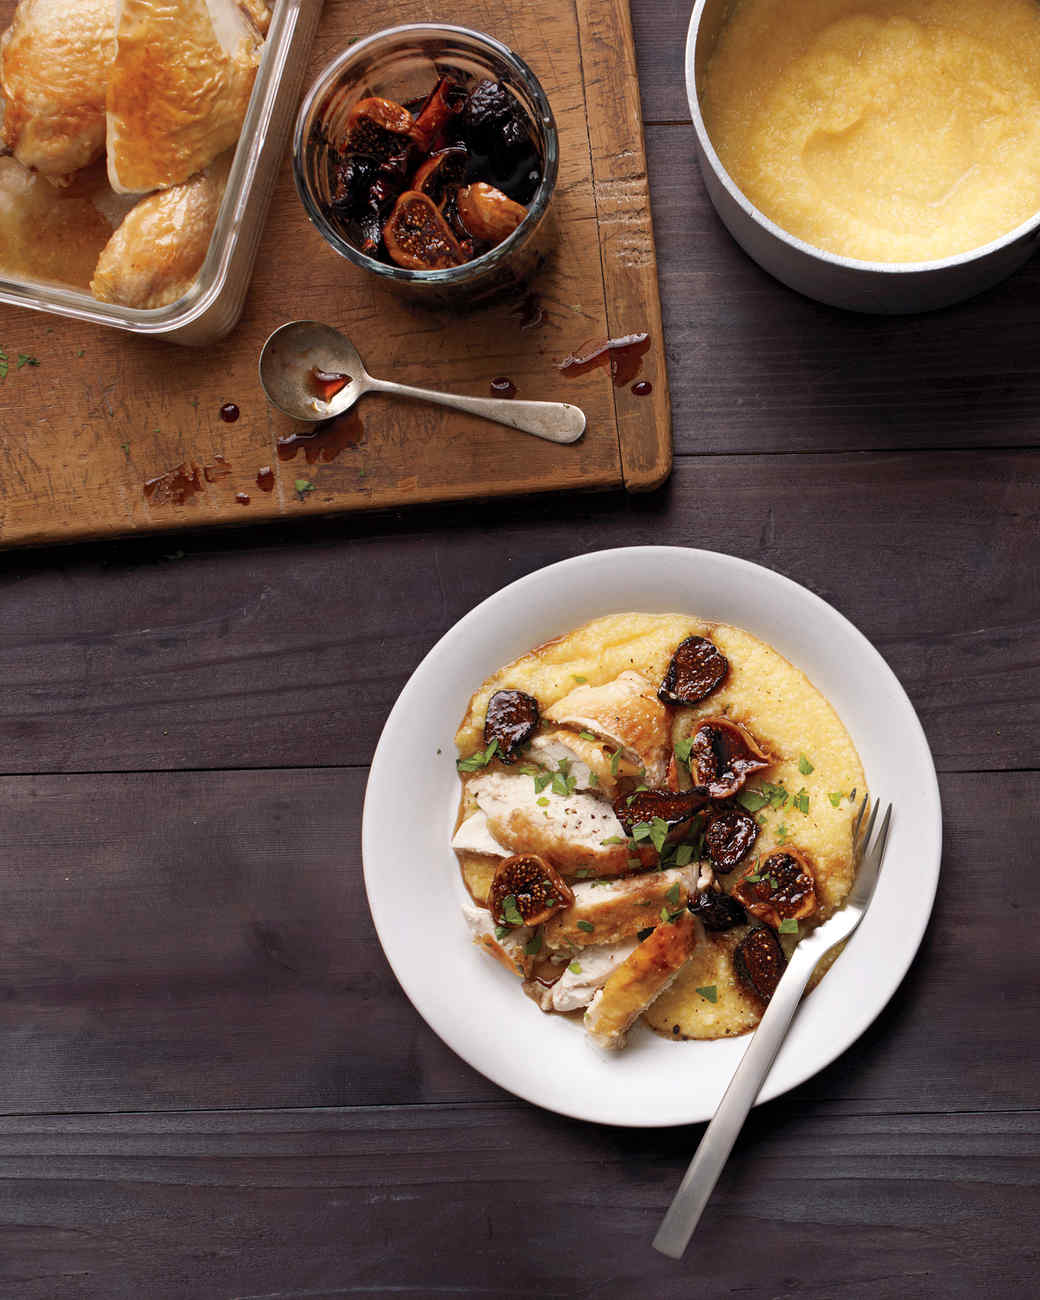 Roasted Chicken with Polenta and Balsamic-Poached Figs